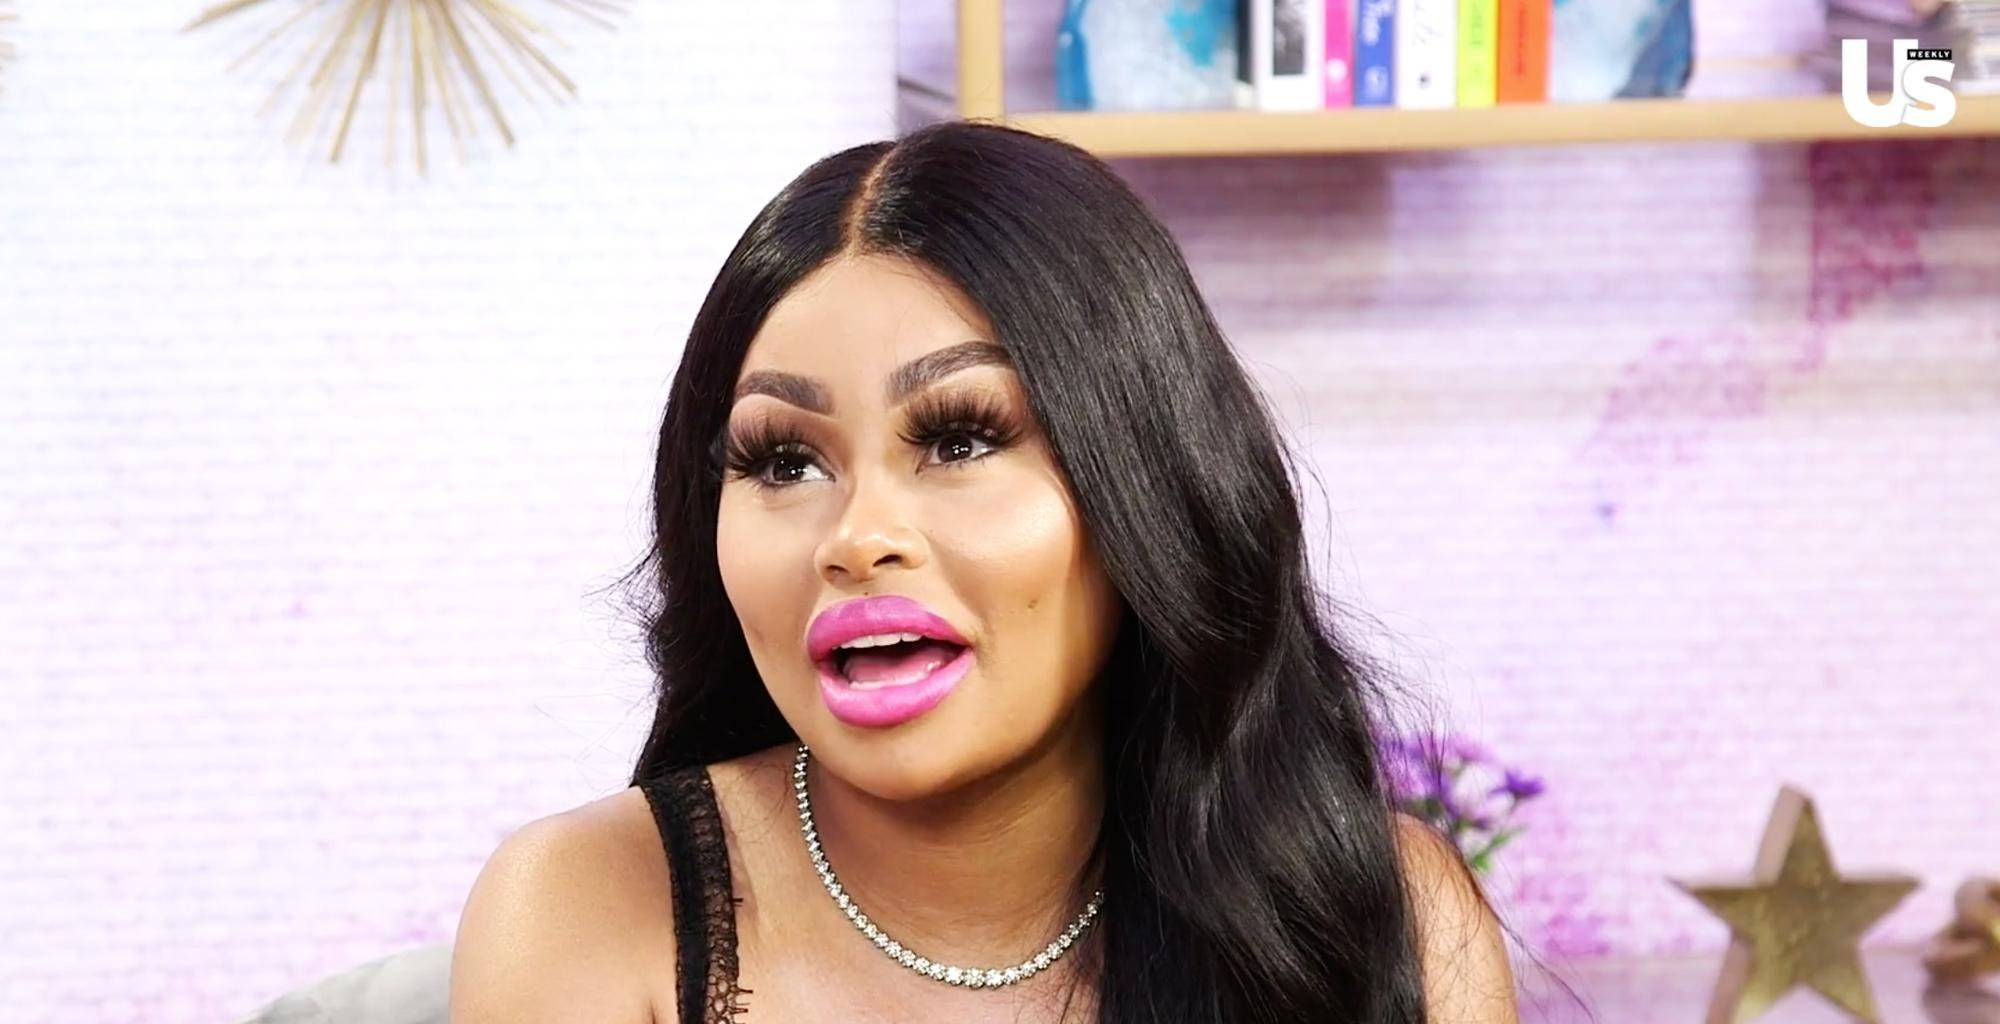 Blac Chyna Addresses What It Takes To Heal And Says That Emotions Can Often Get The Best Of Us